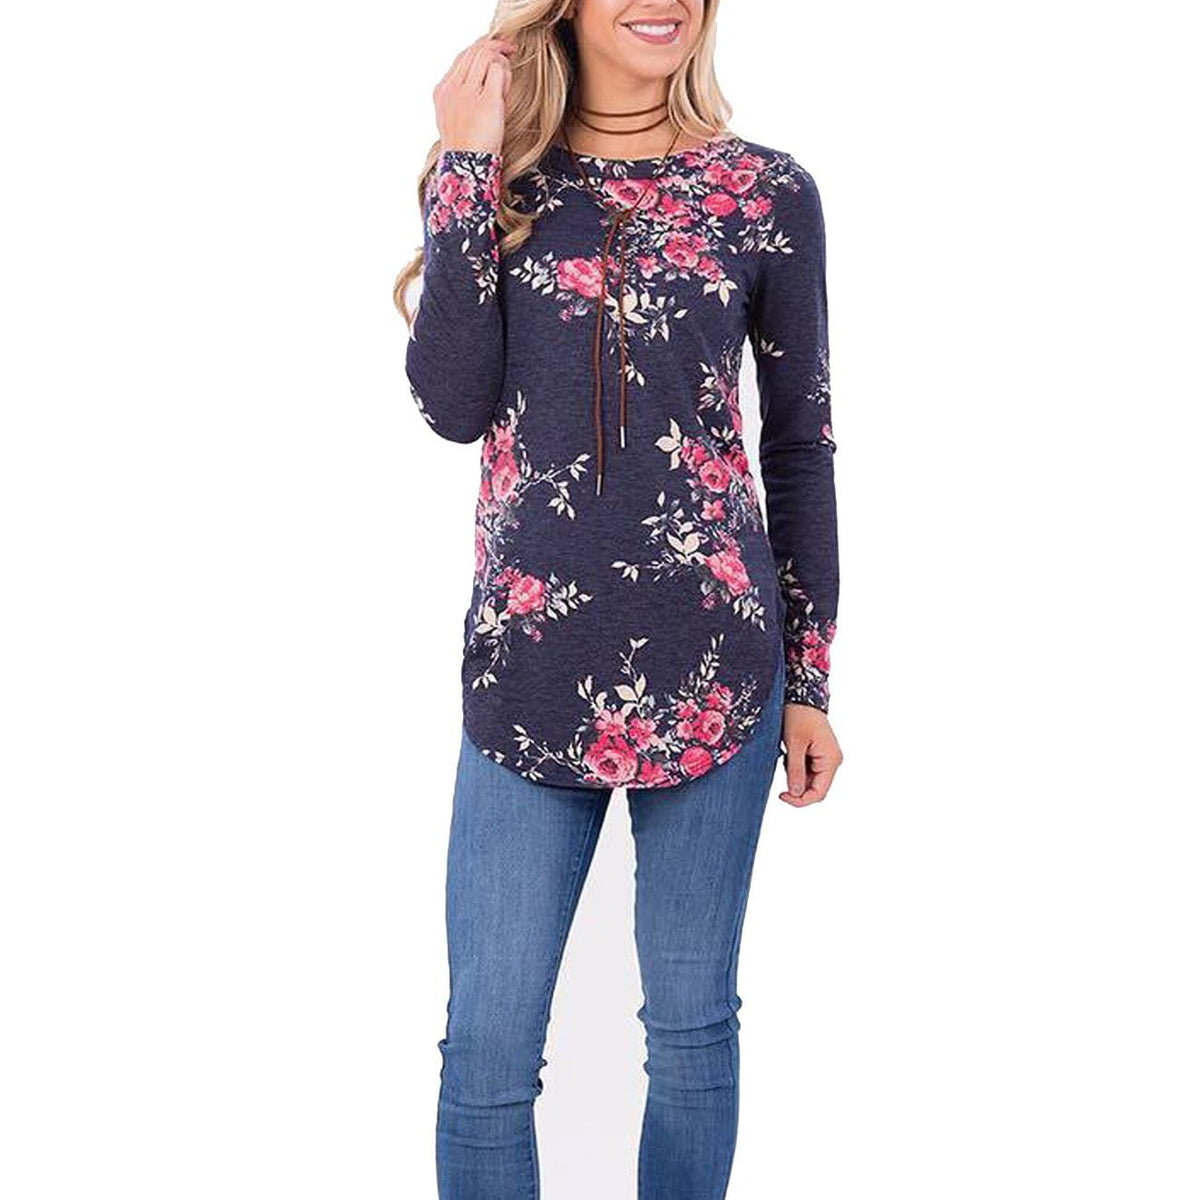 Long Sleeve T-shirt Women O Neck Flower Print Casual Tee Shirt Slim Female T shirt Fashion Autumn Ladies Tops-SHIRTS-SheSimplyShops